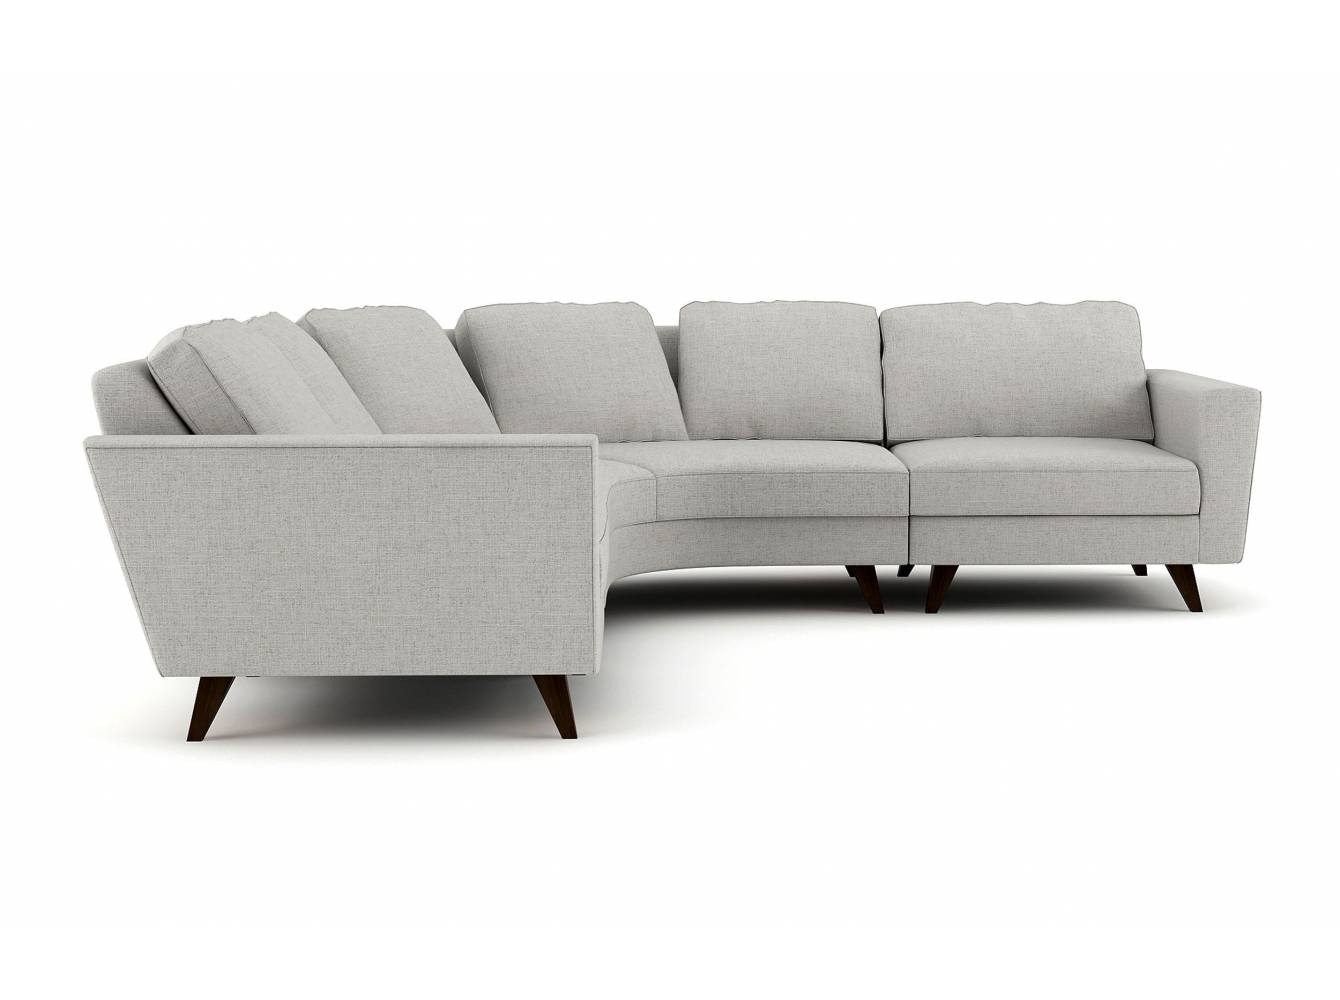 Pel Rounded Corner Sectional – Stem Throughout Rounded Corner Sectional Sofas (View 2 of 10)